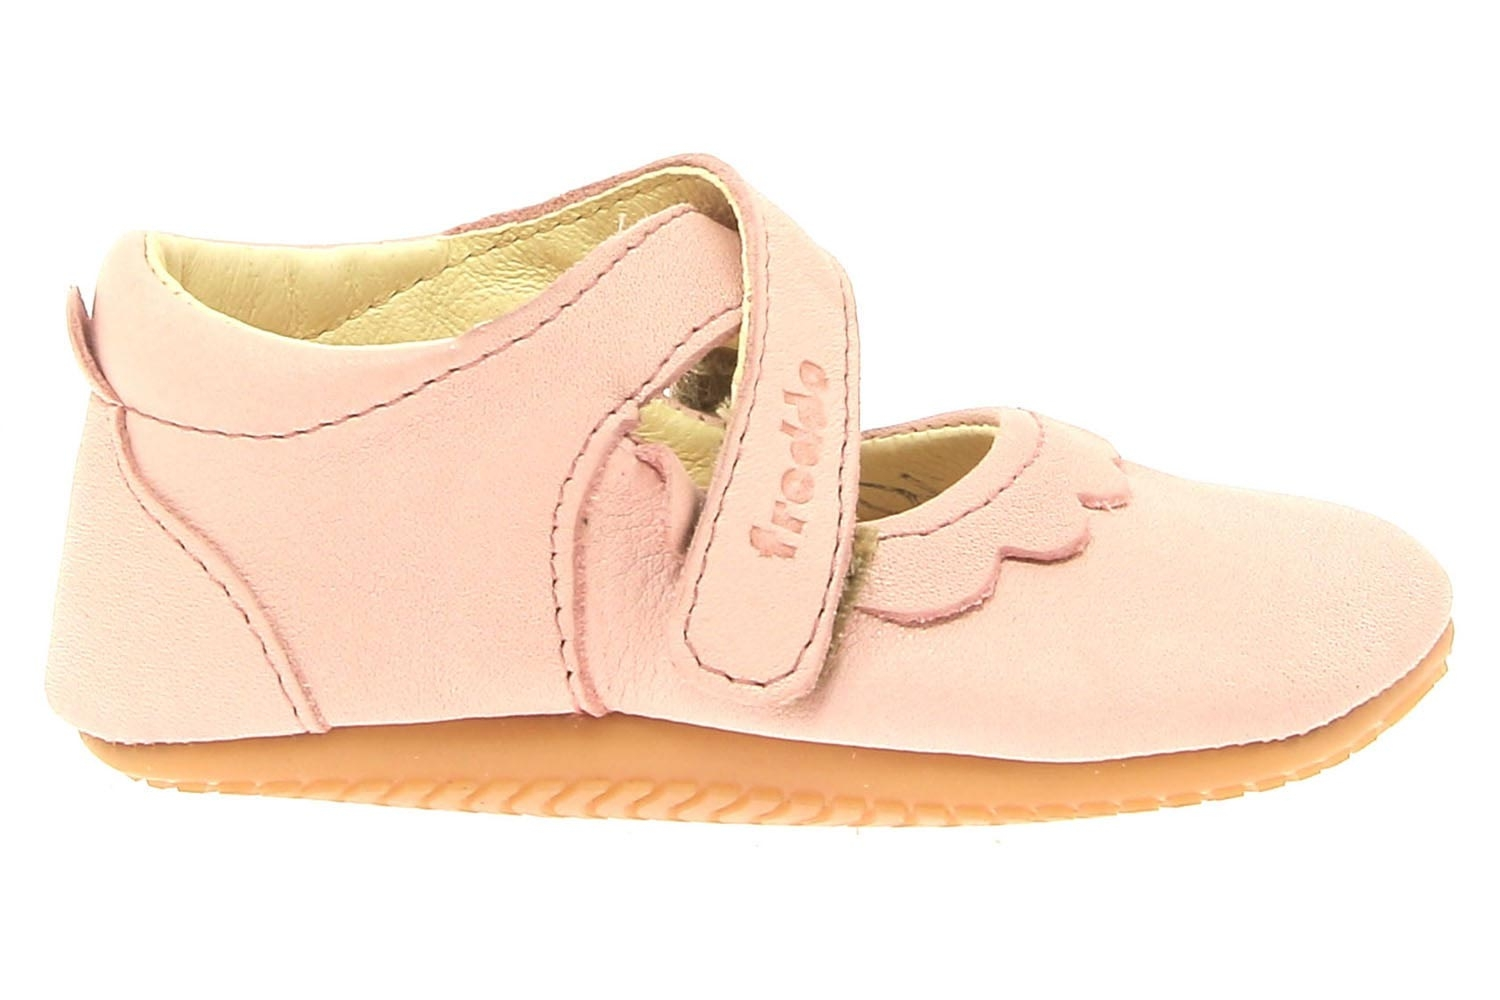 meilleures baskets f38f0 07caf Chaussures layette froddo rose g1140002-1 chaussures layette ...